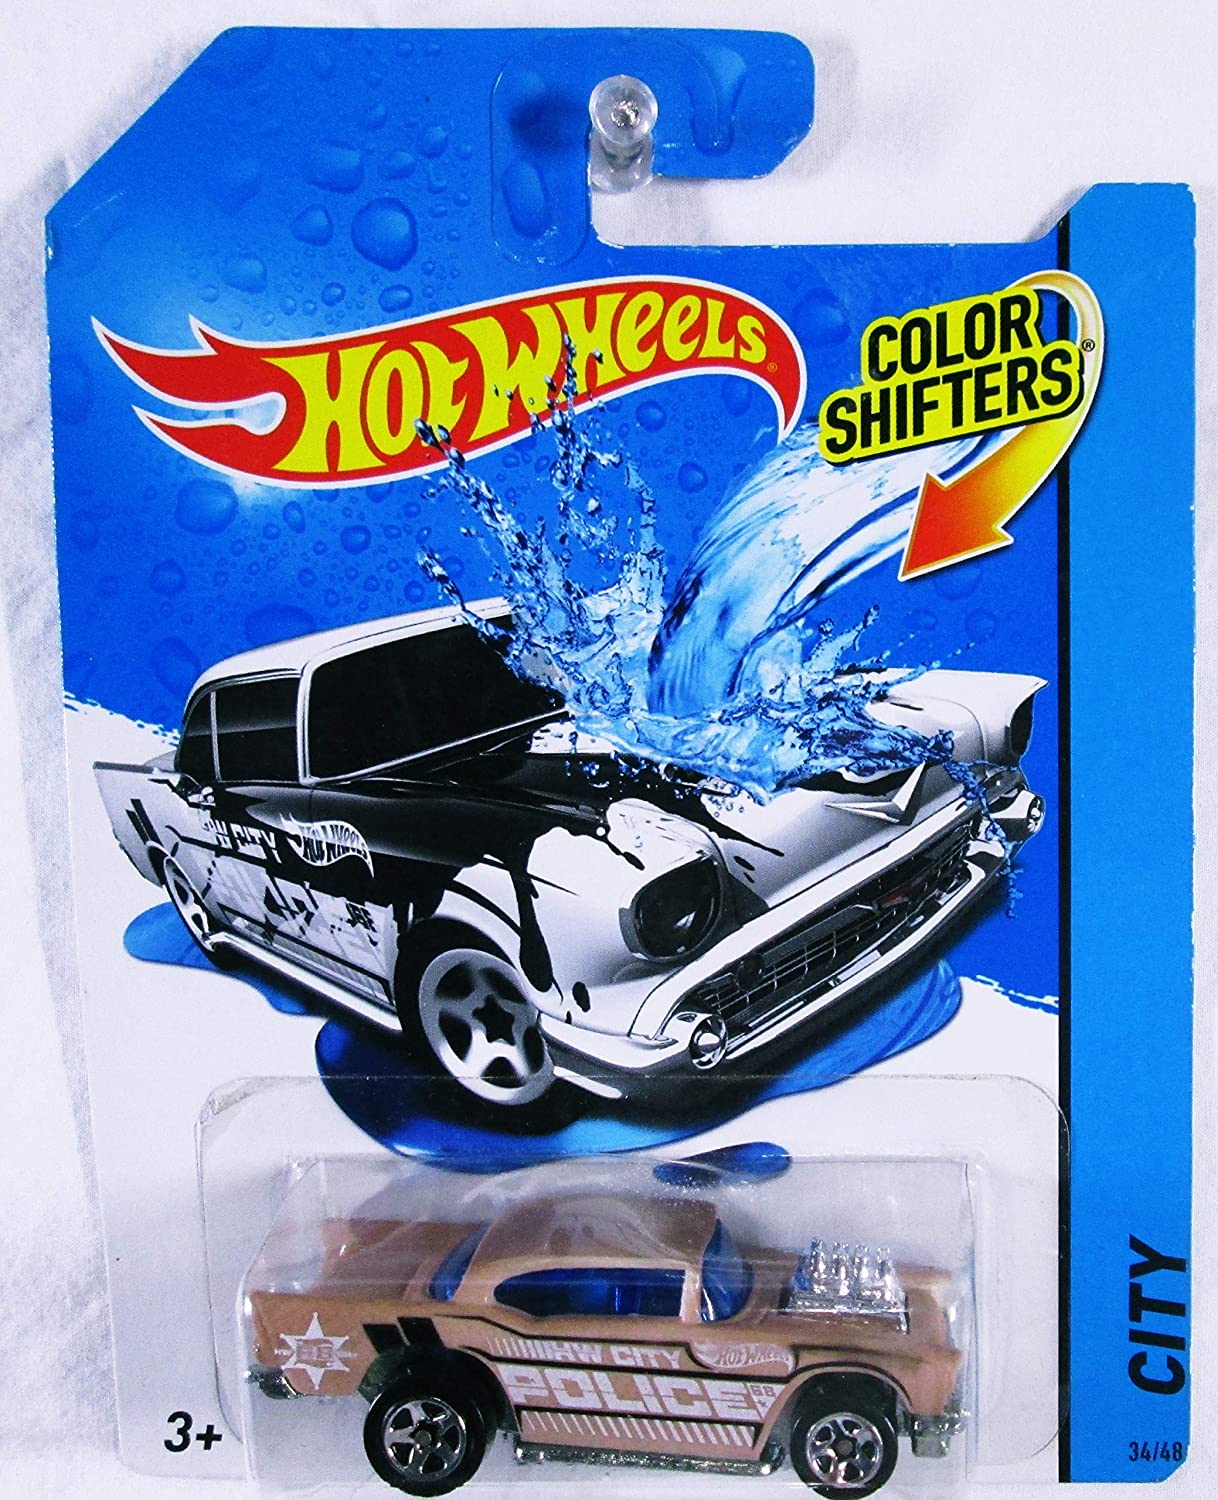 Amazon.com: Hot Wheels Color Shifters '57 Chevy Vehicle: Toys & Games